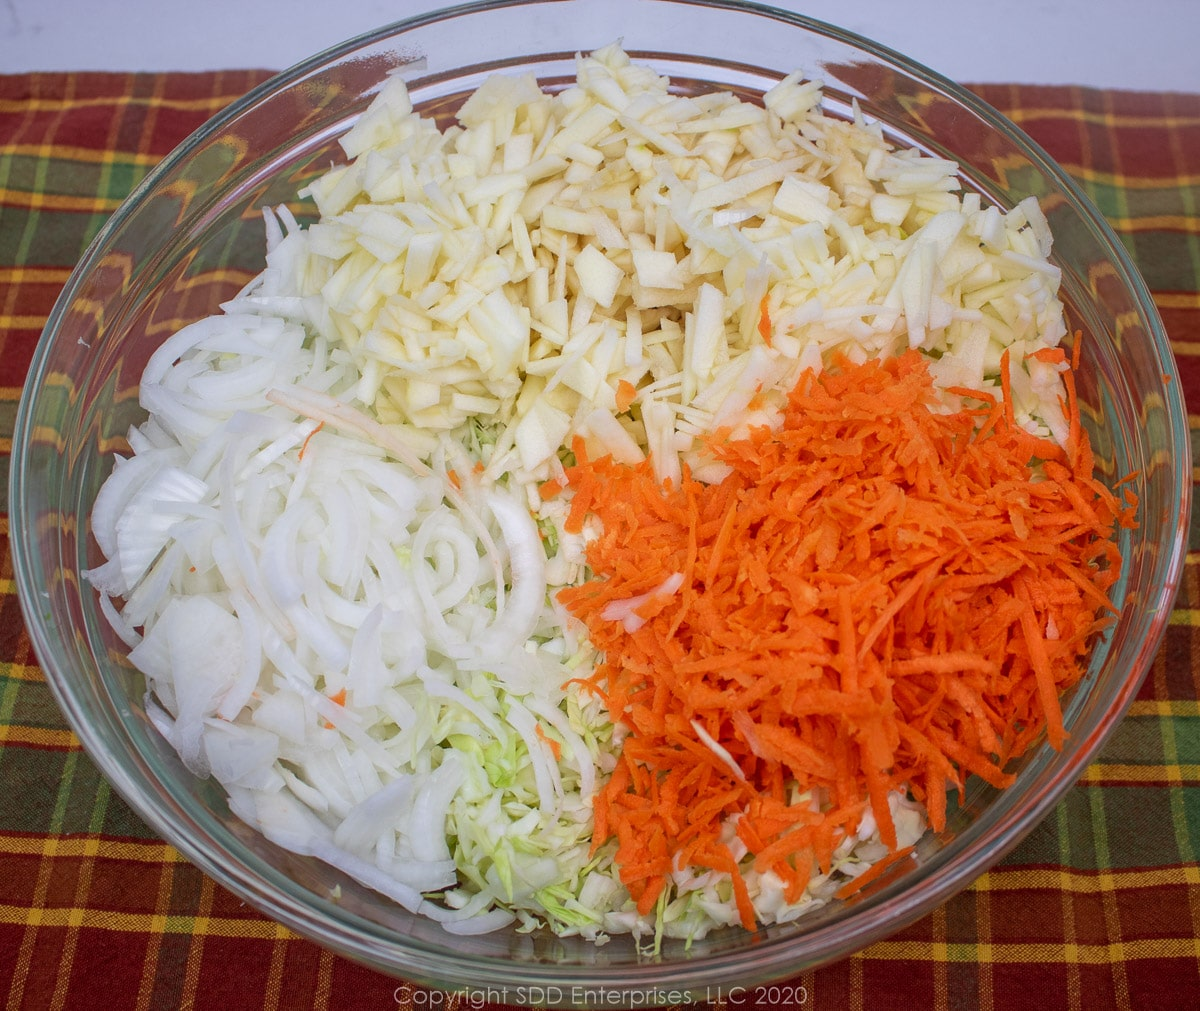 shredded cabbage, onions, carrots and apples in a glass bowl